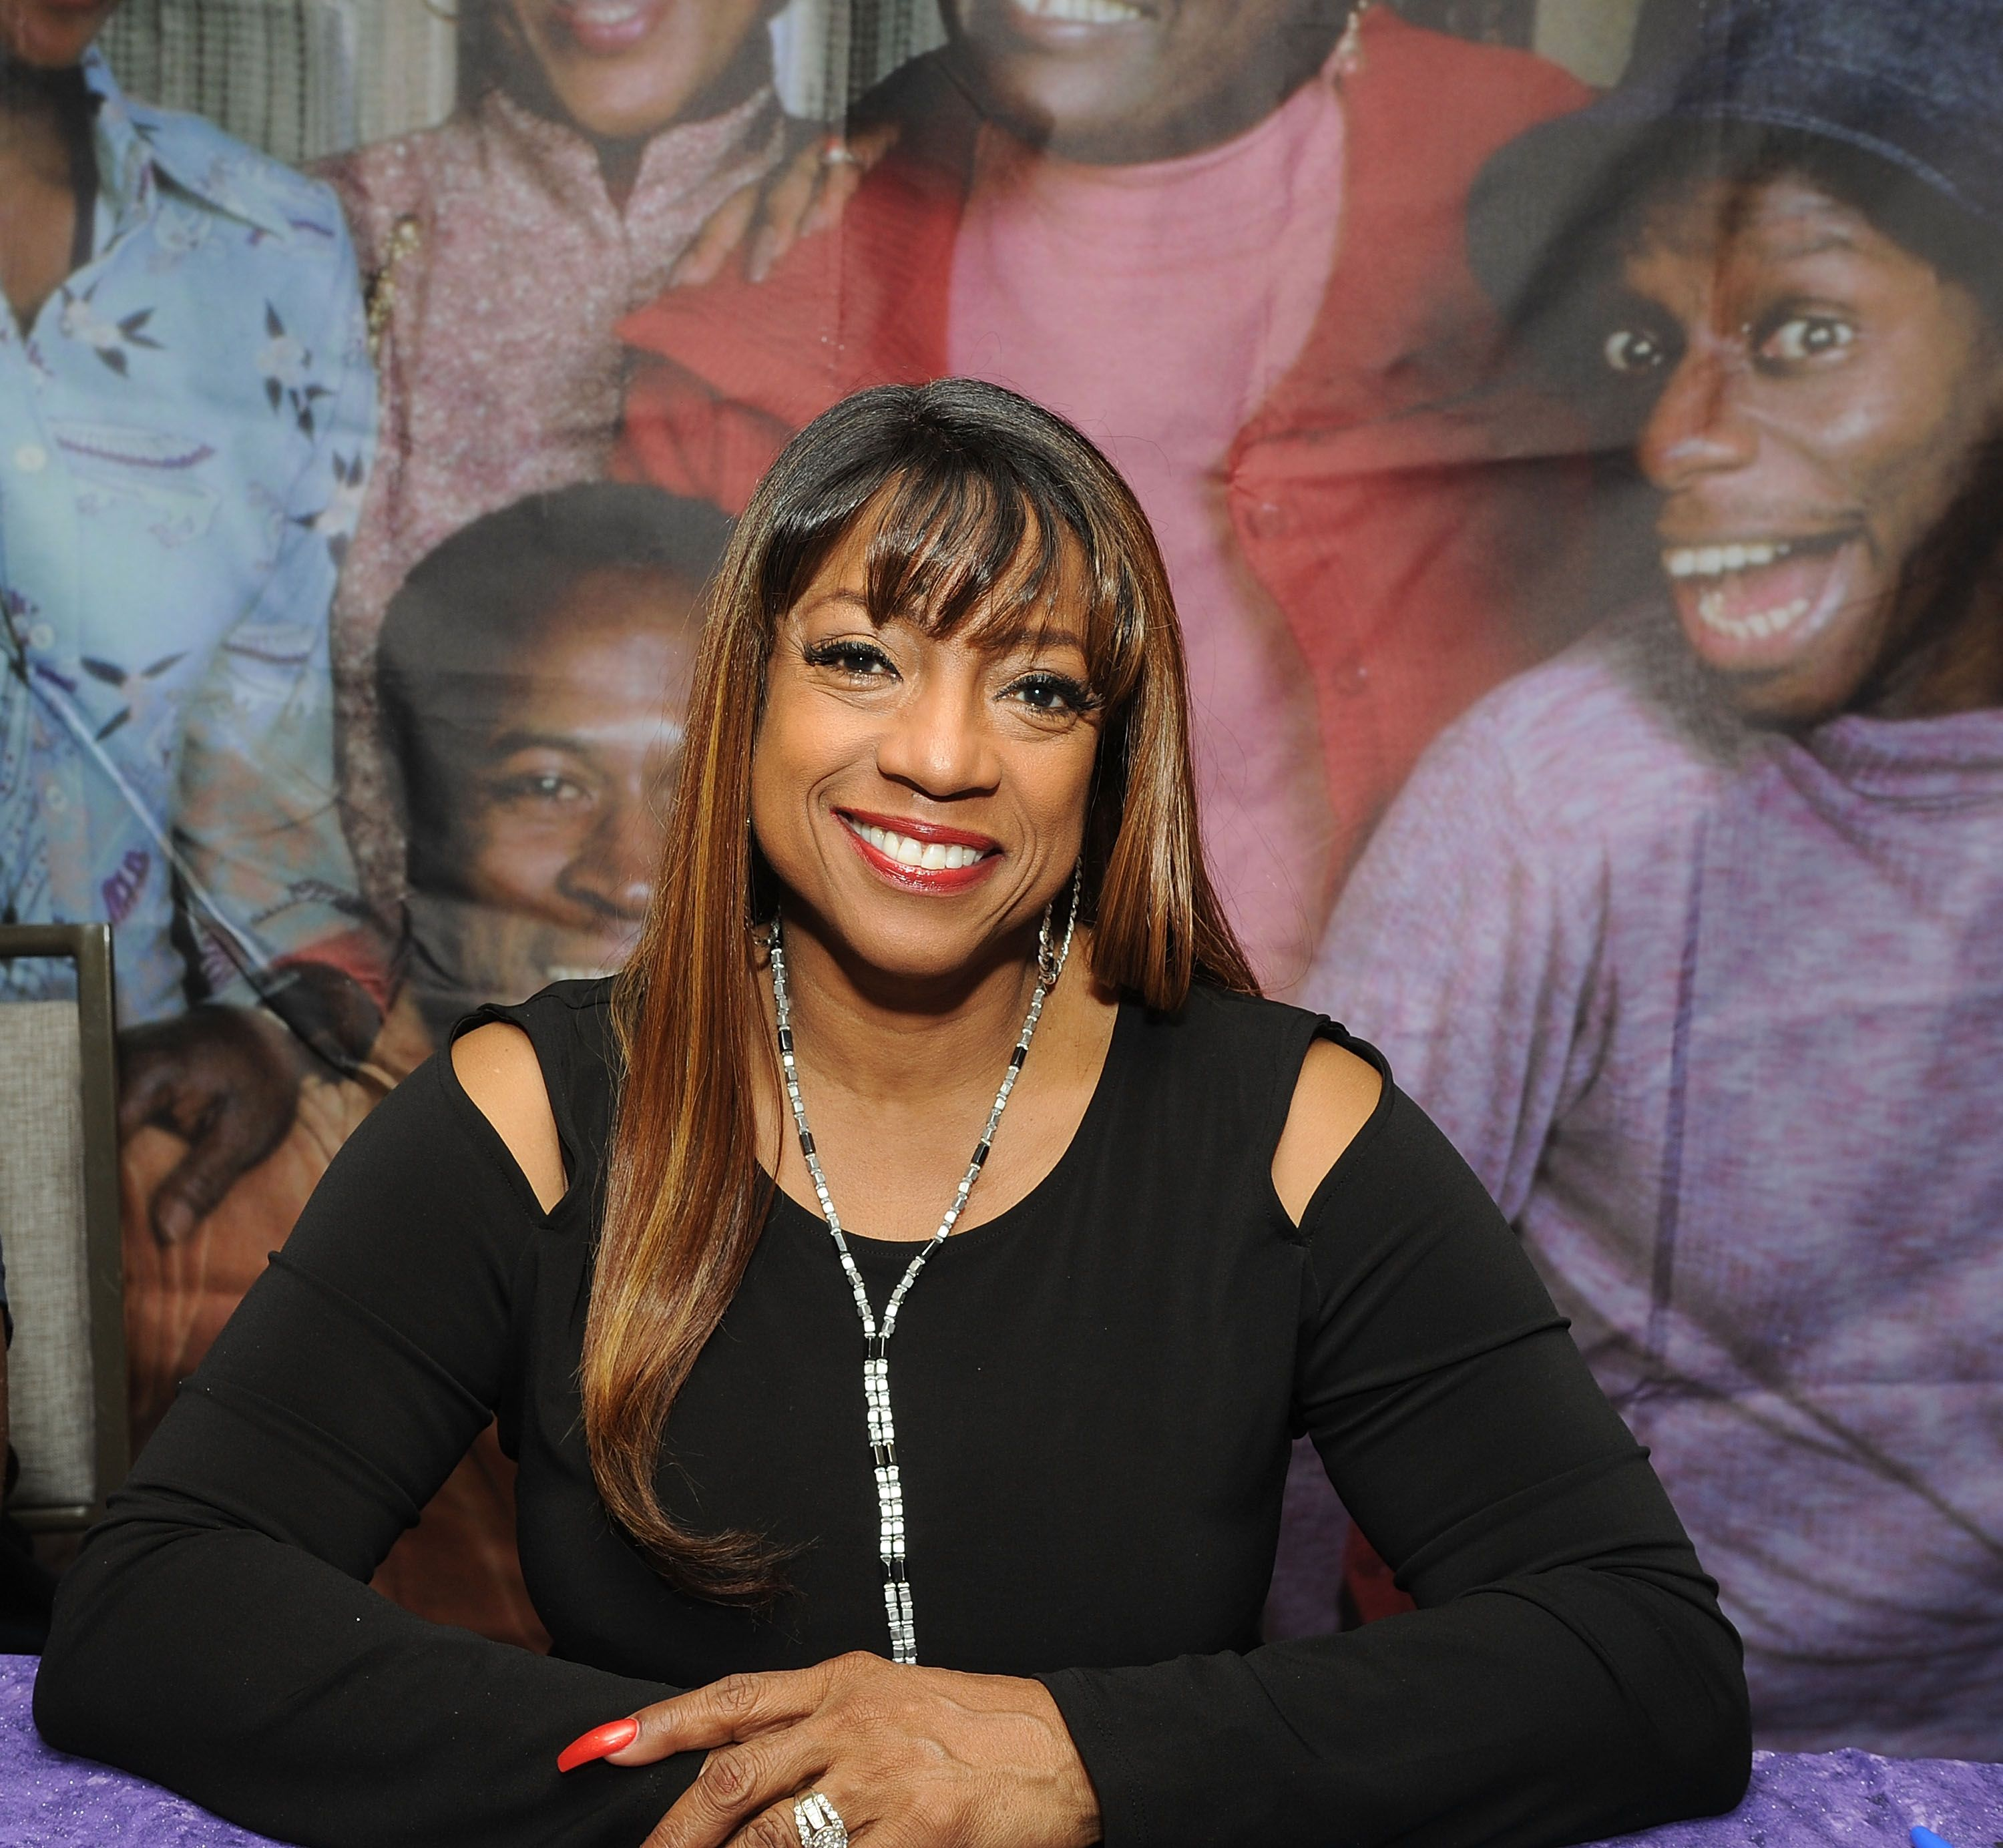 Bern Nadette Stanis attends the Chiller Theatre Expo Fall 2018 at Hilton Parsippany on October 26, 2018 in Parsippany, New Jersey. | Source: Getty Images